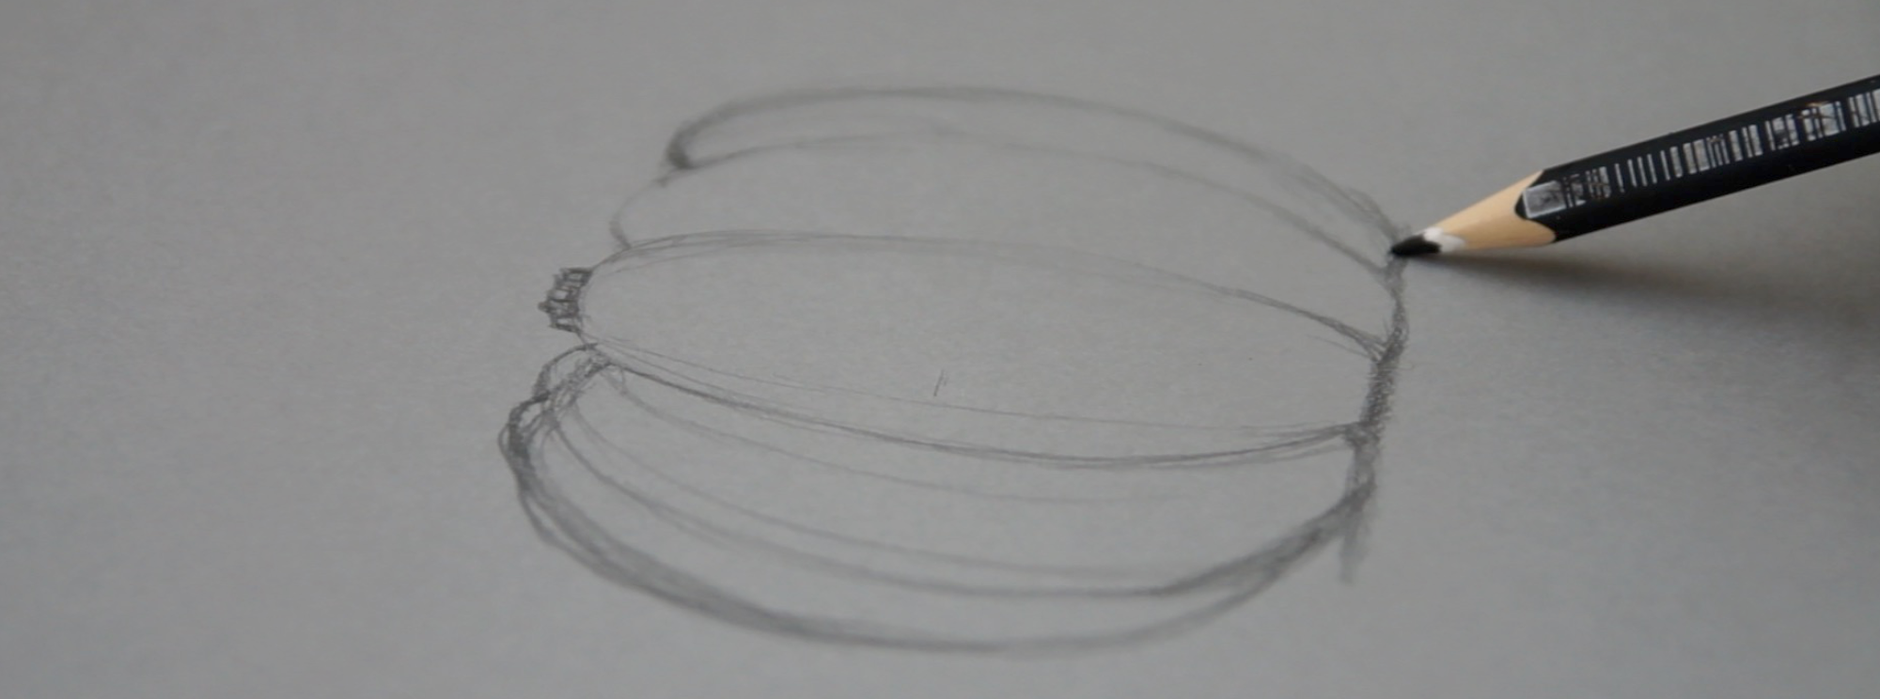 First sketch of a pumpkin on grey paper |  Drawing a Pumpkin and Creating a Sweater , by The Daily Atelier